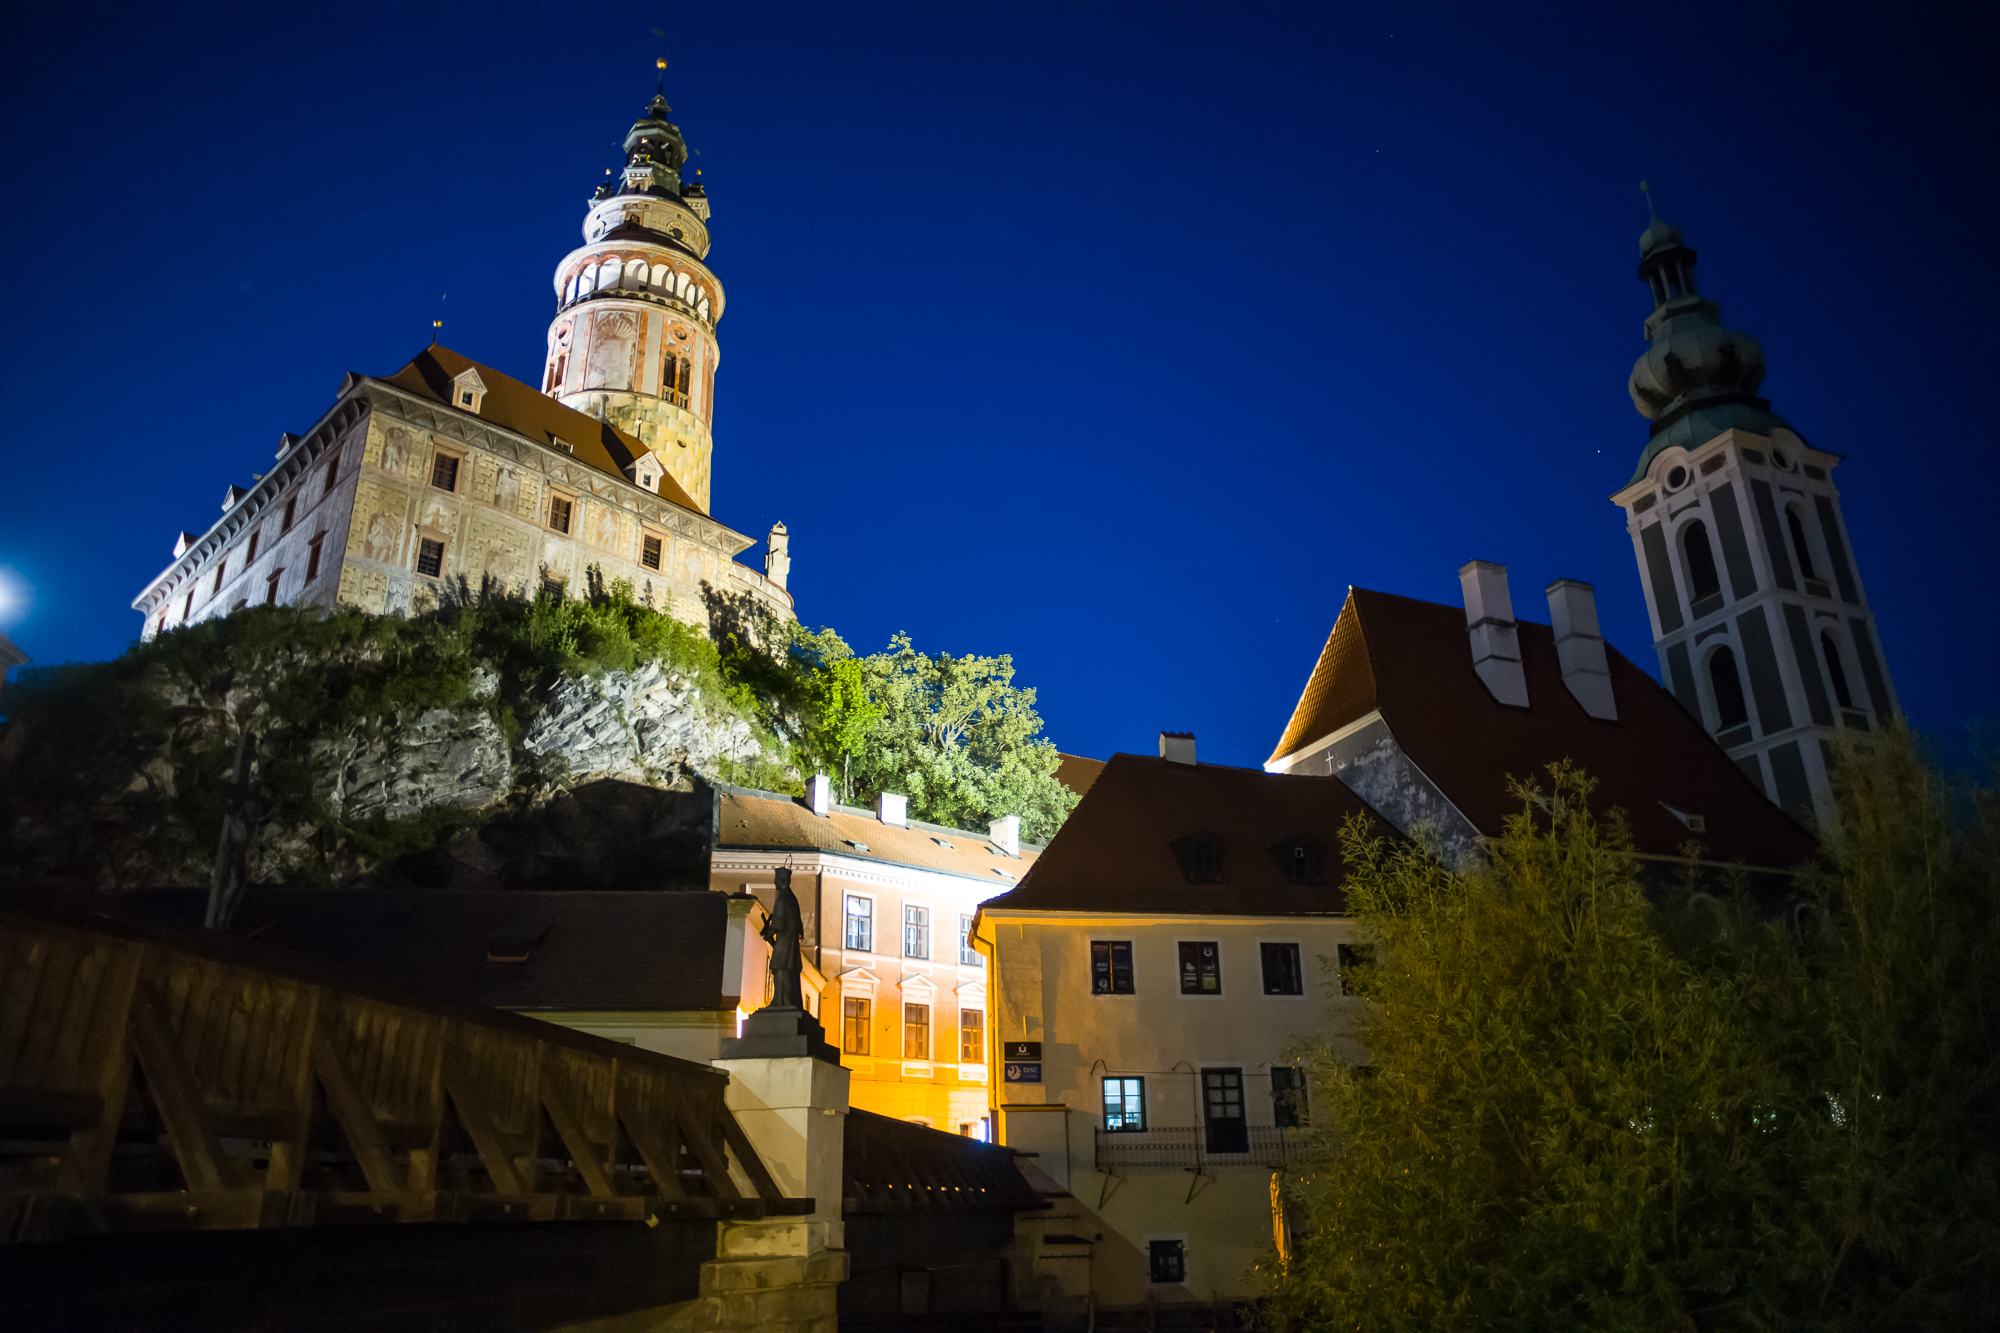 Castle of Cesky Krumlov at night